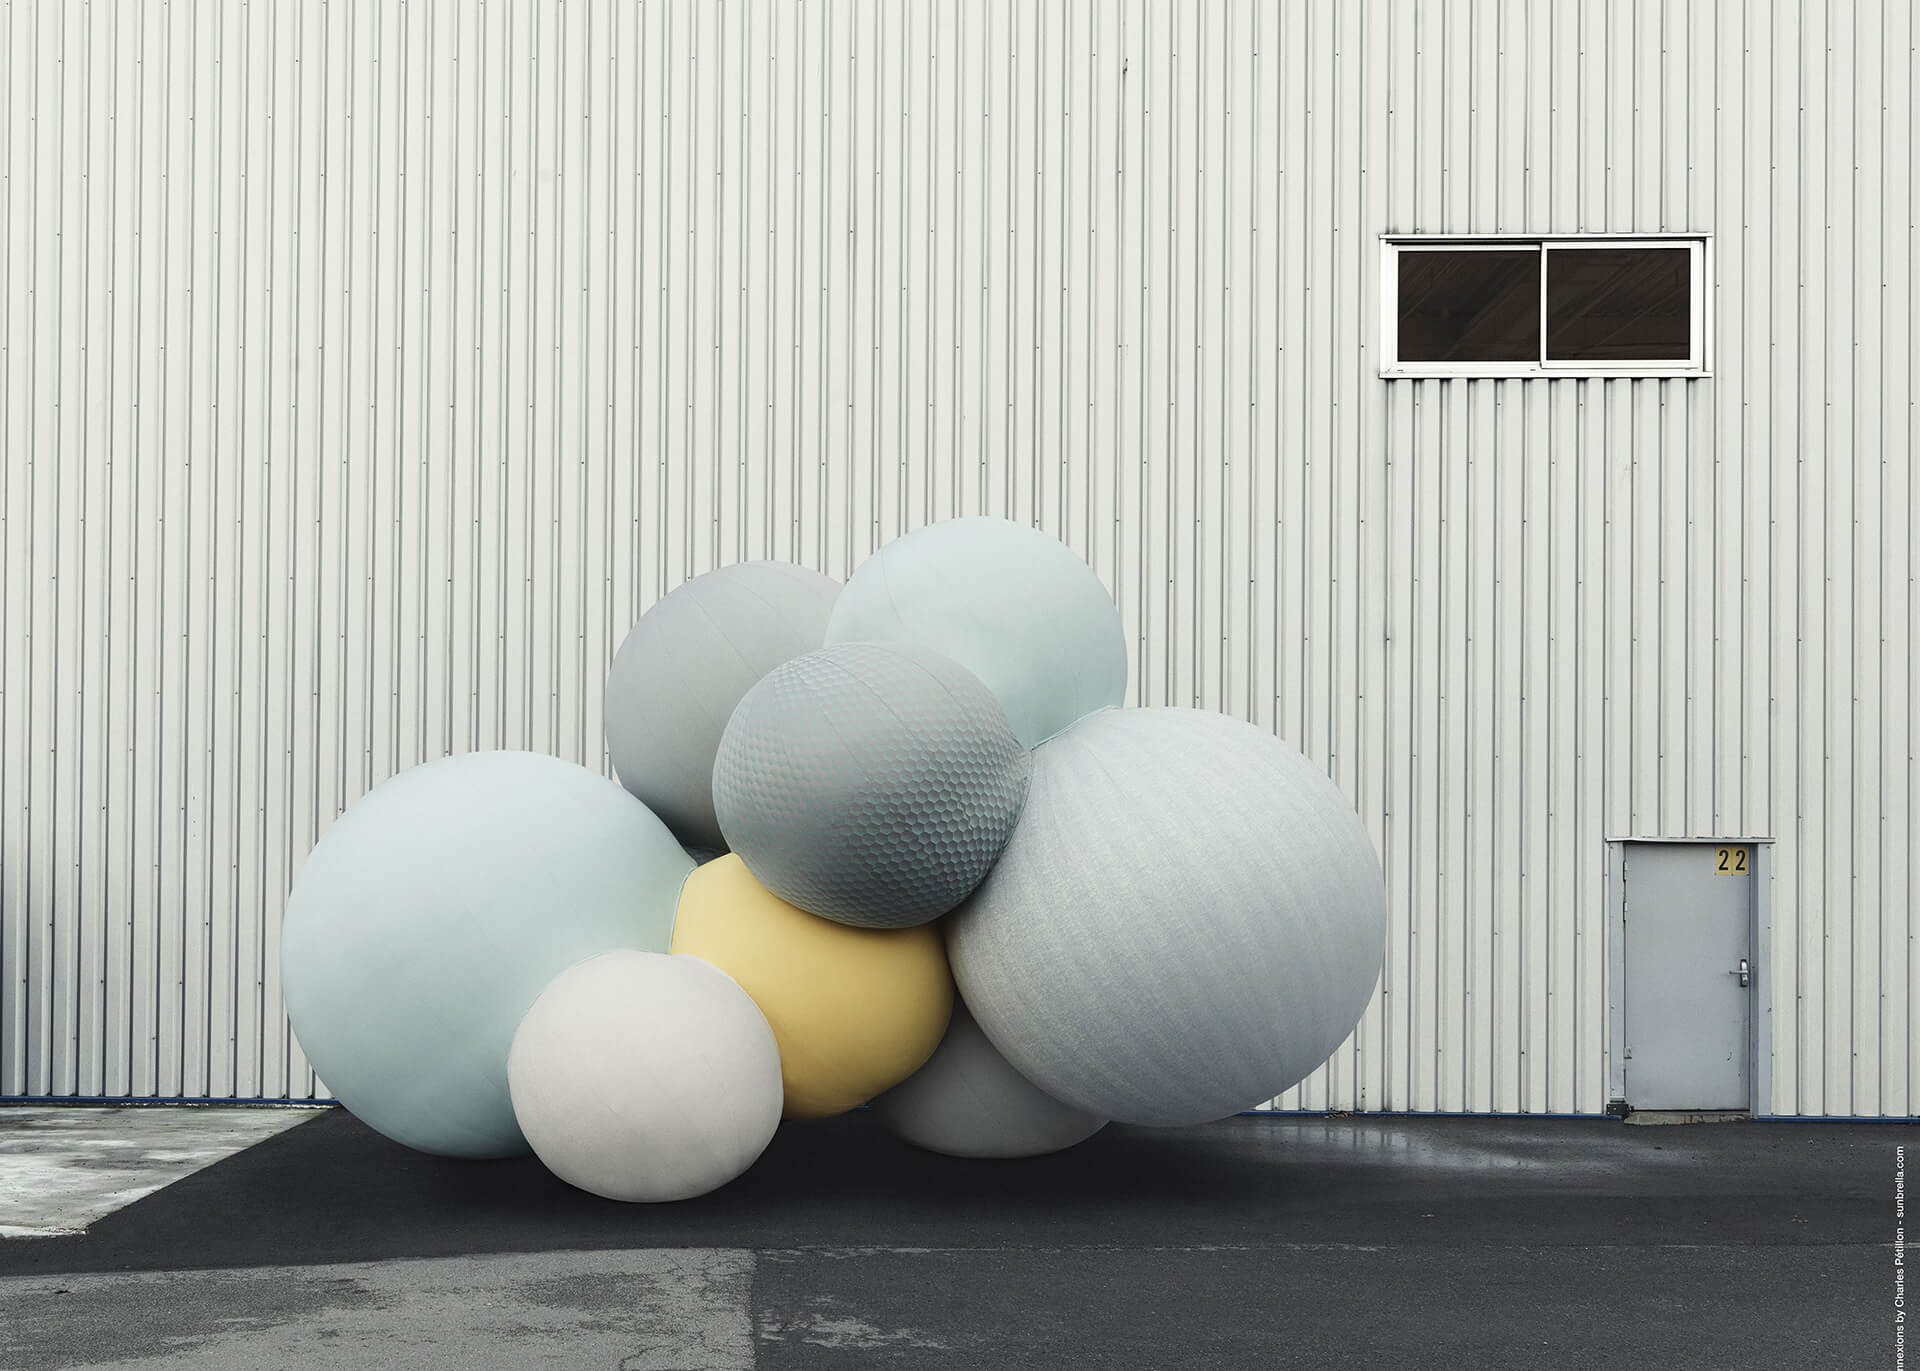 Sunbrella Connexions by Charles Petillon balloons sitting in front of a warehouse.